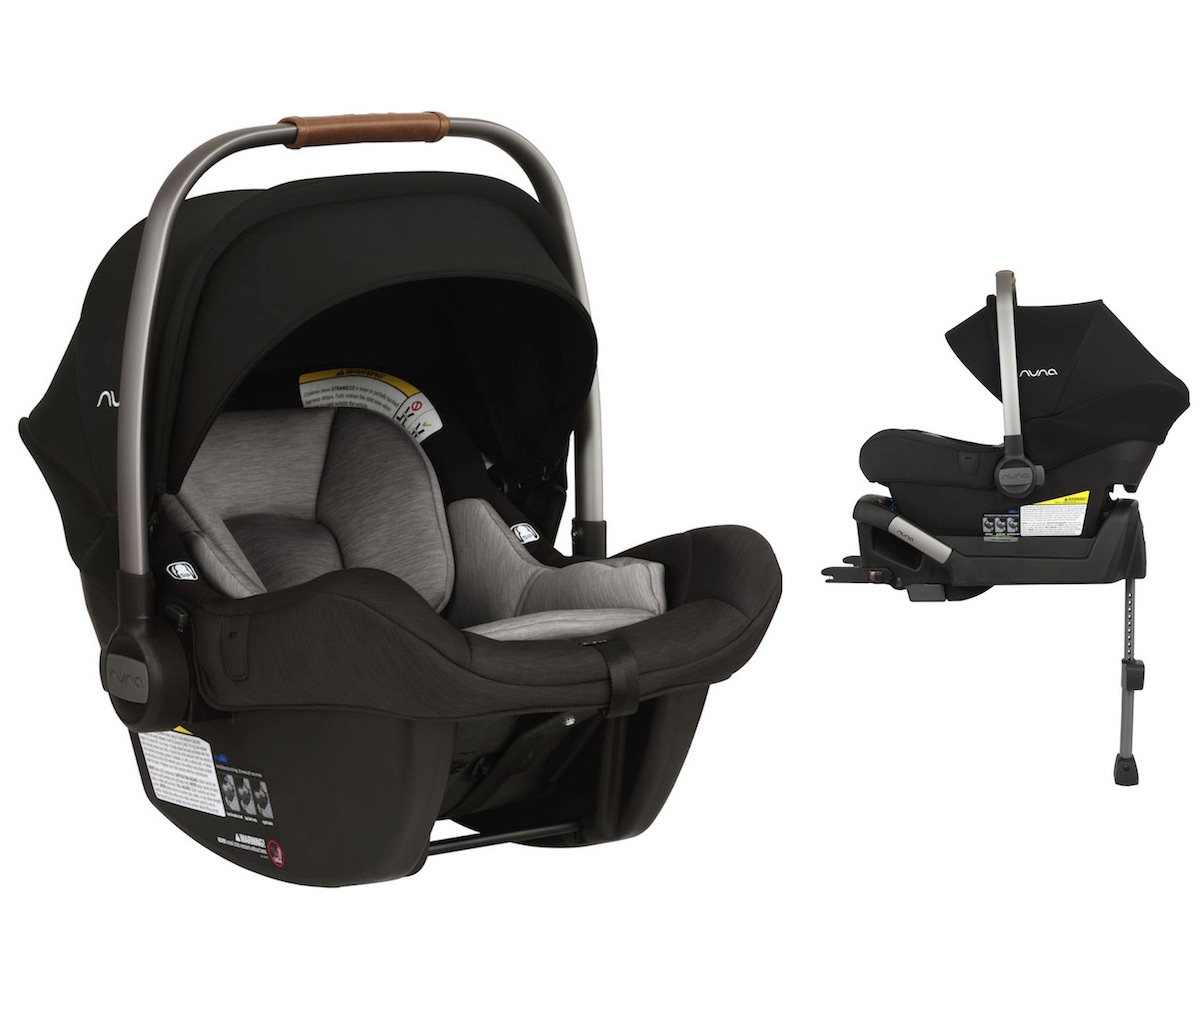 NUNA Pipa Lite Infant Car Seat + Base in Caviar